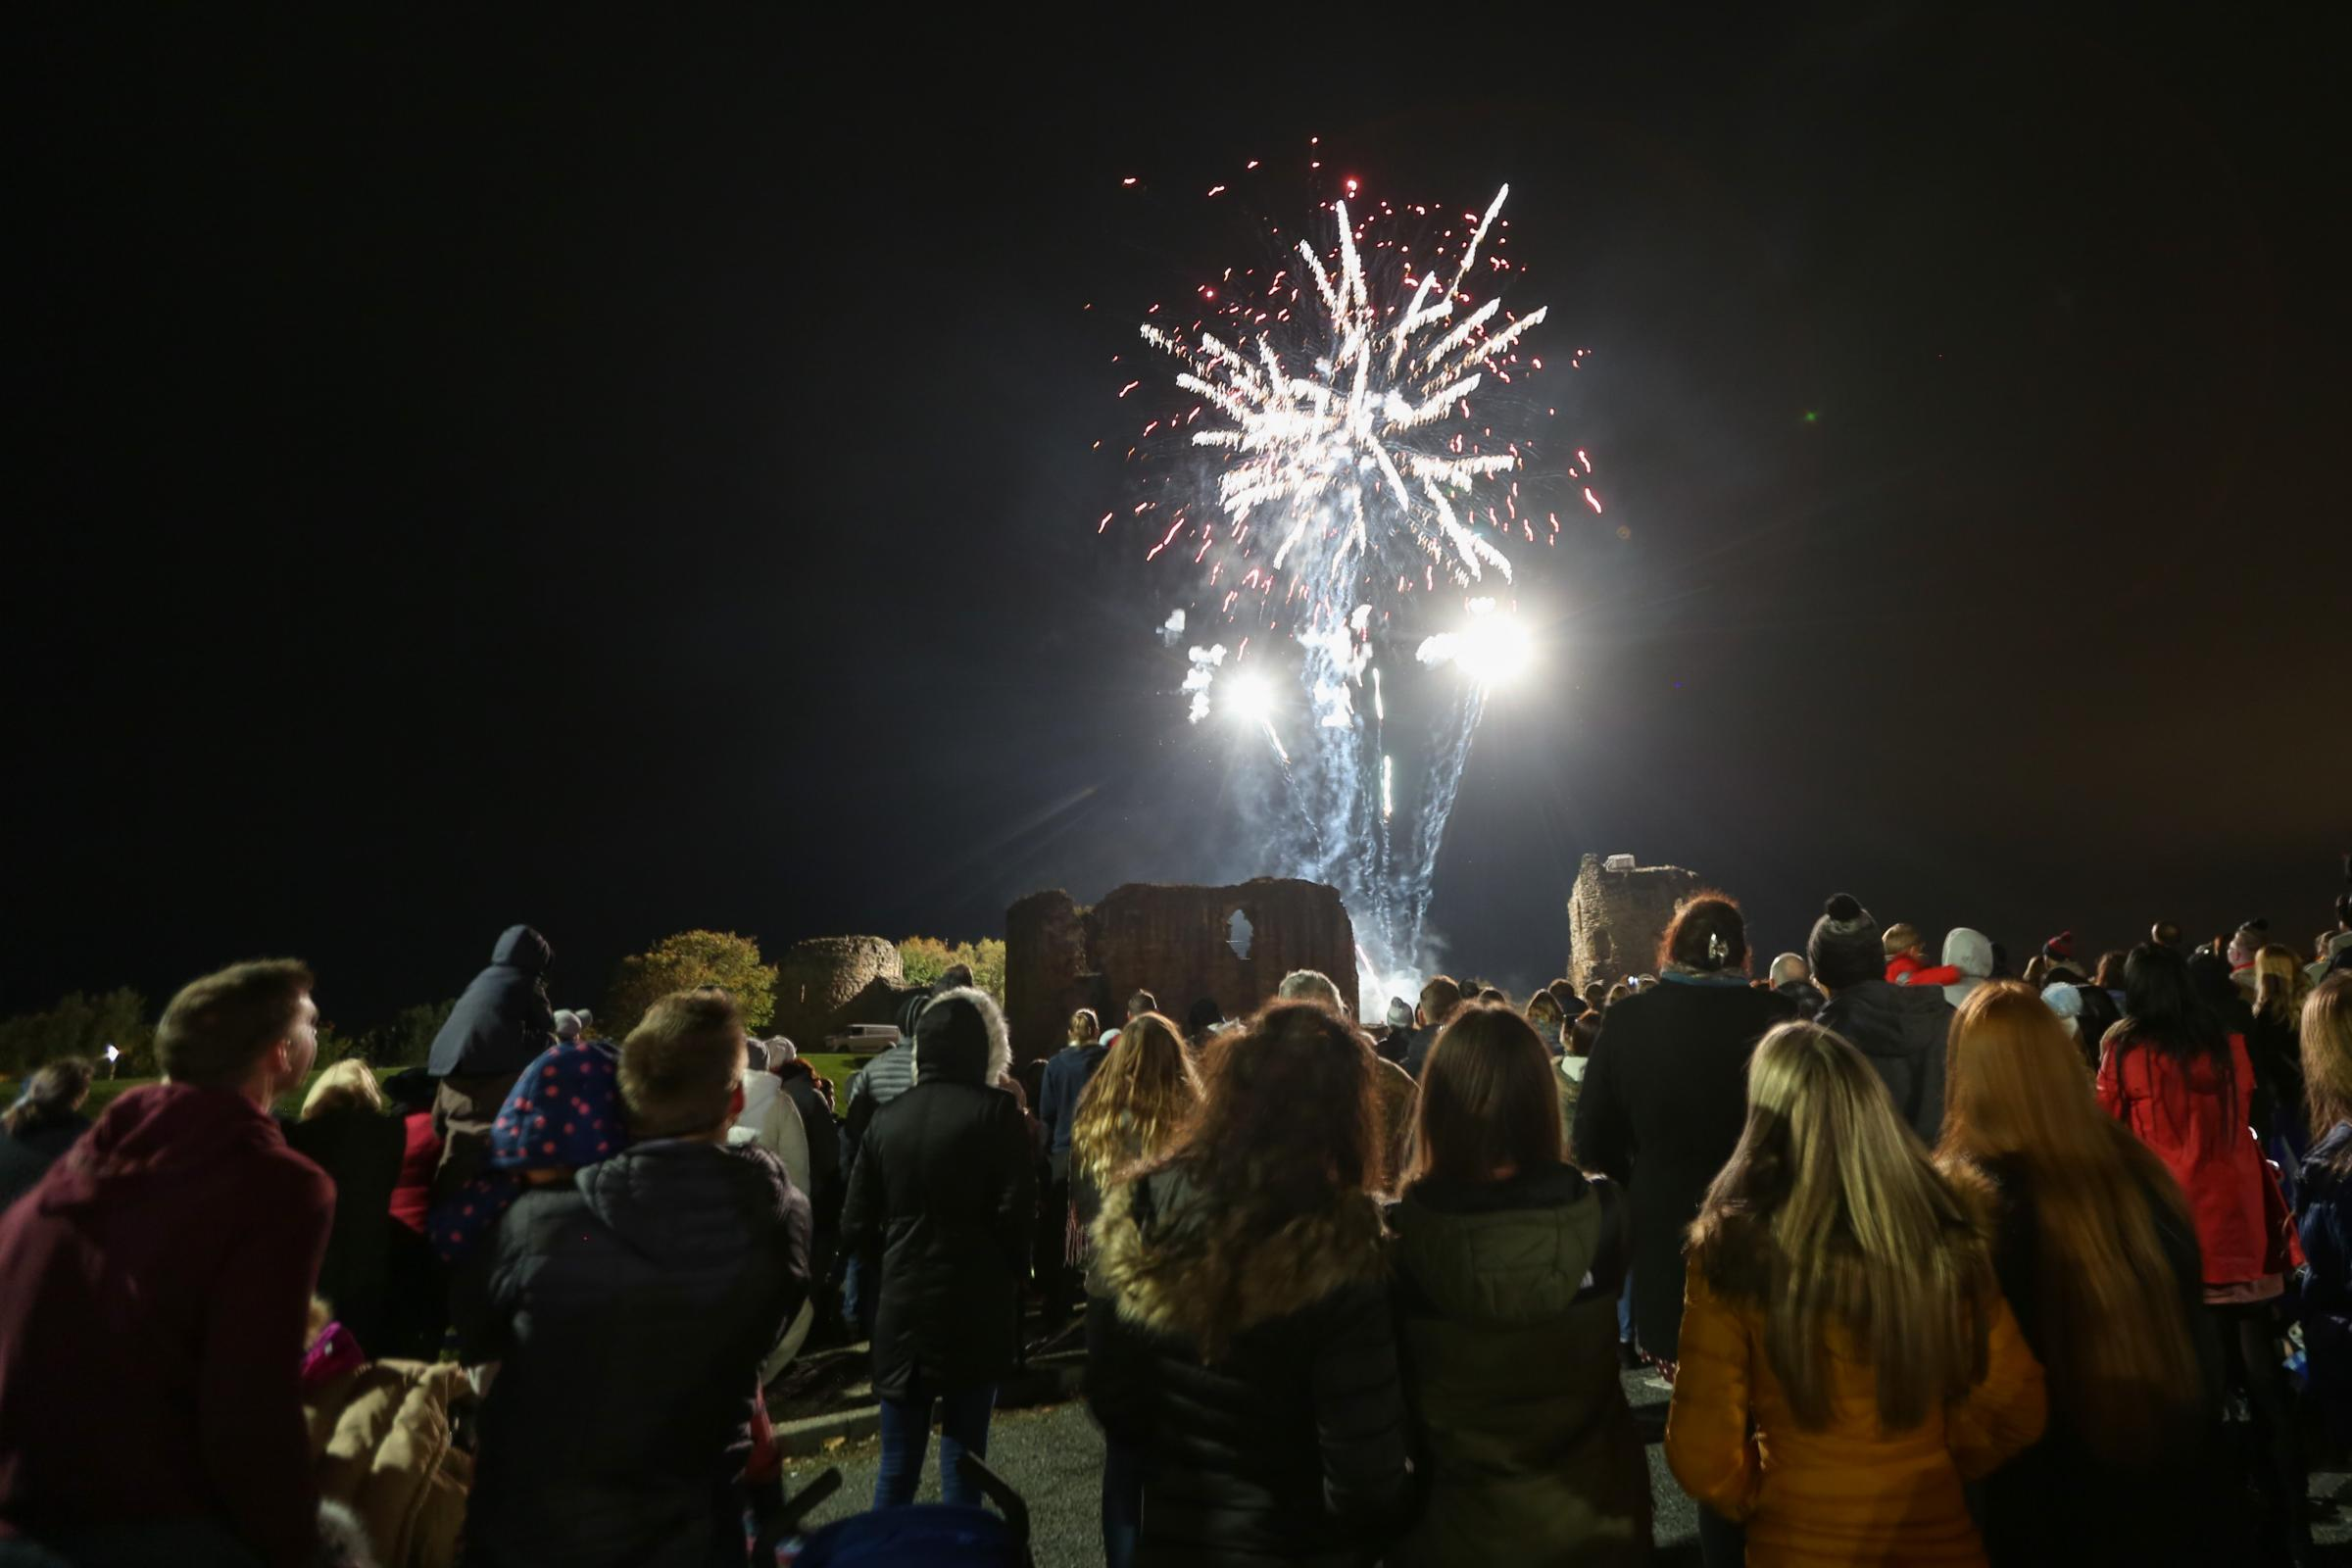 Flint RNLI hold a fireworks display at Flint Castle. Pic: Hundreds of people enjoy the fireworks display at Flint Castle. GA021118E.